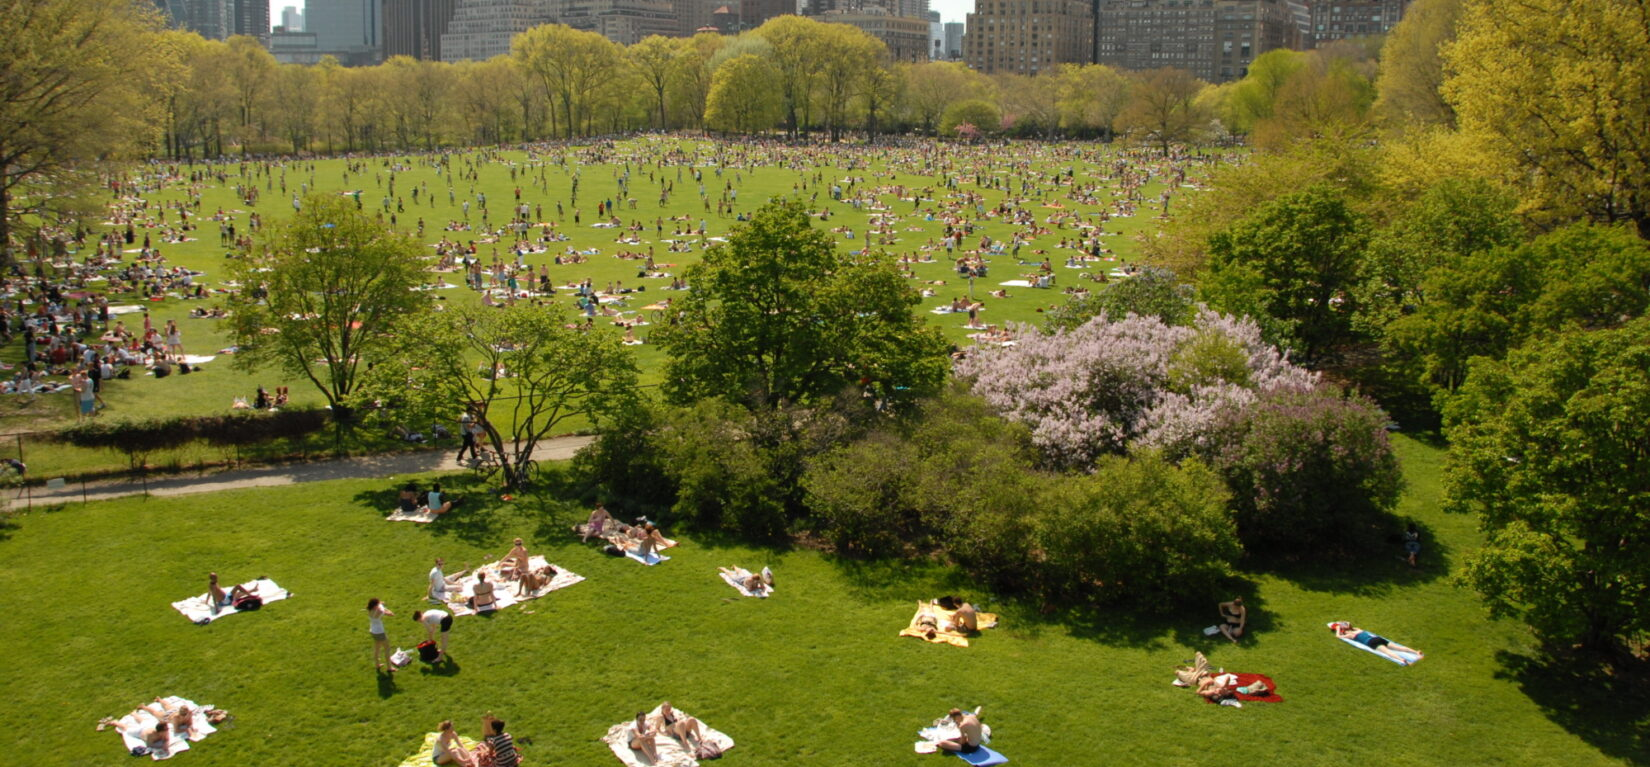 Visitors enjoying the sunshine dot the Sheep Meadow landscape